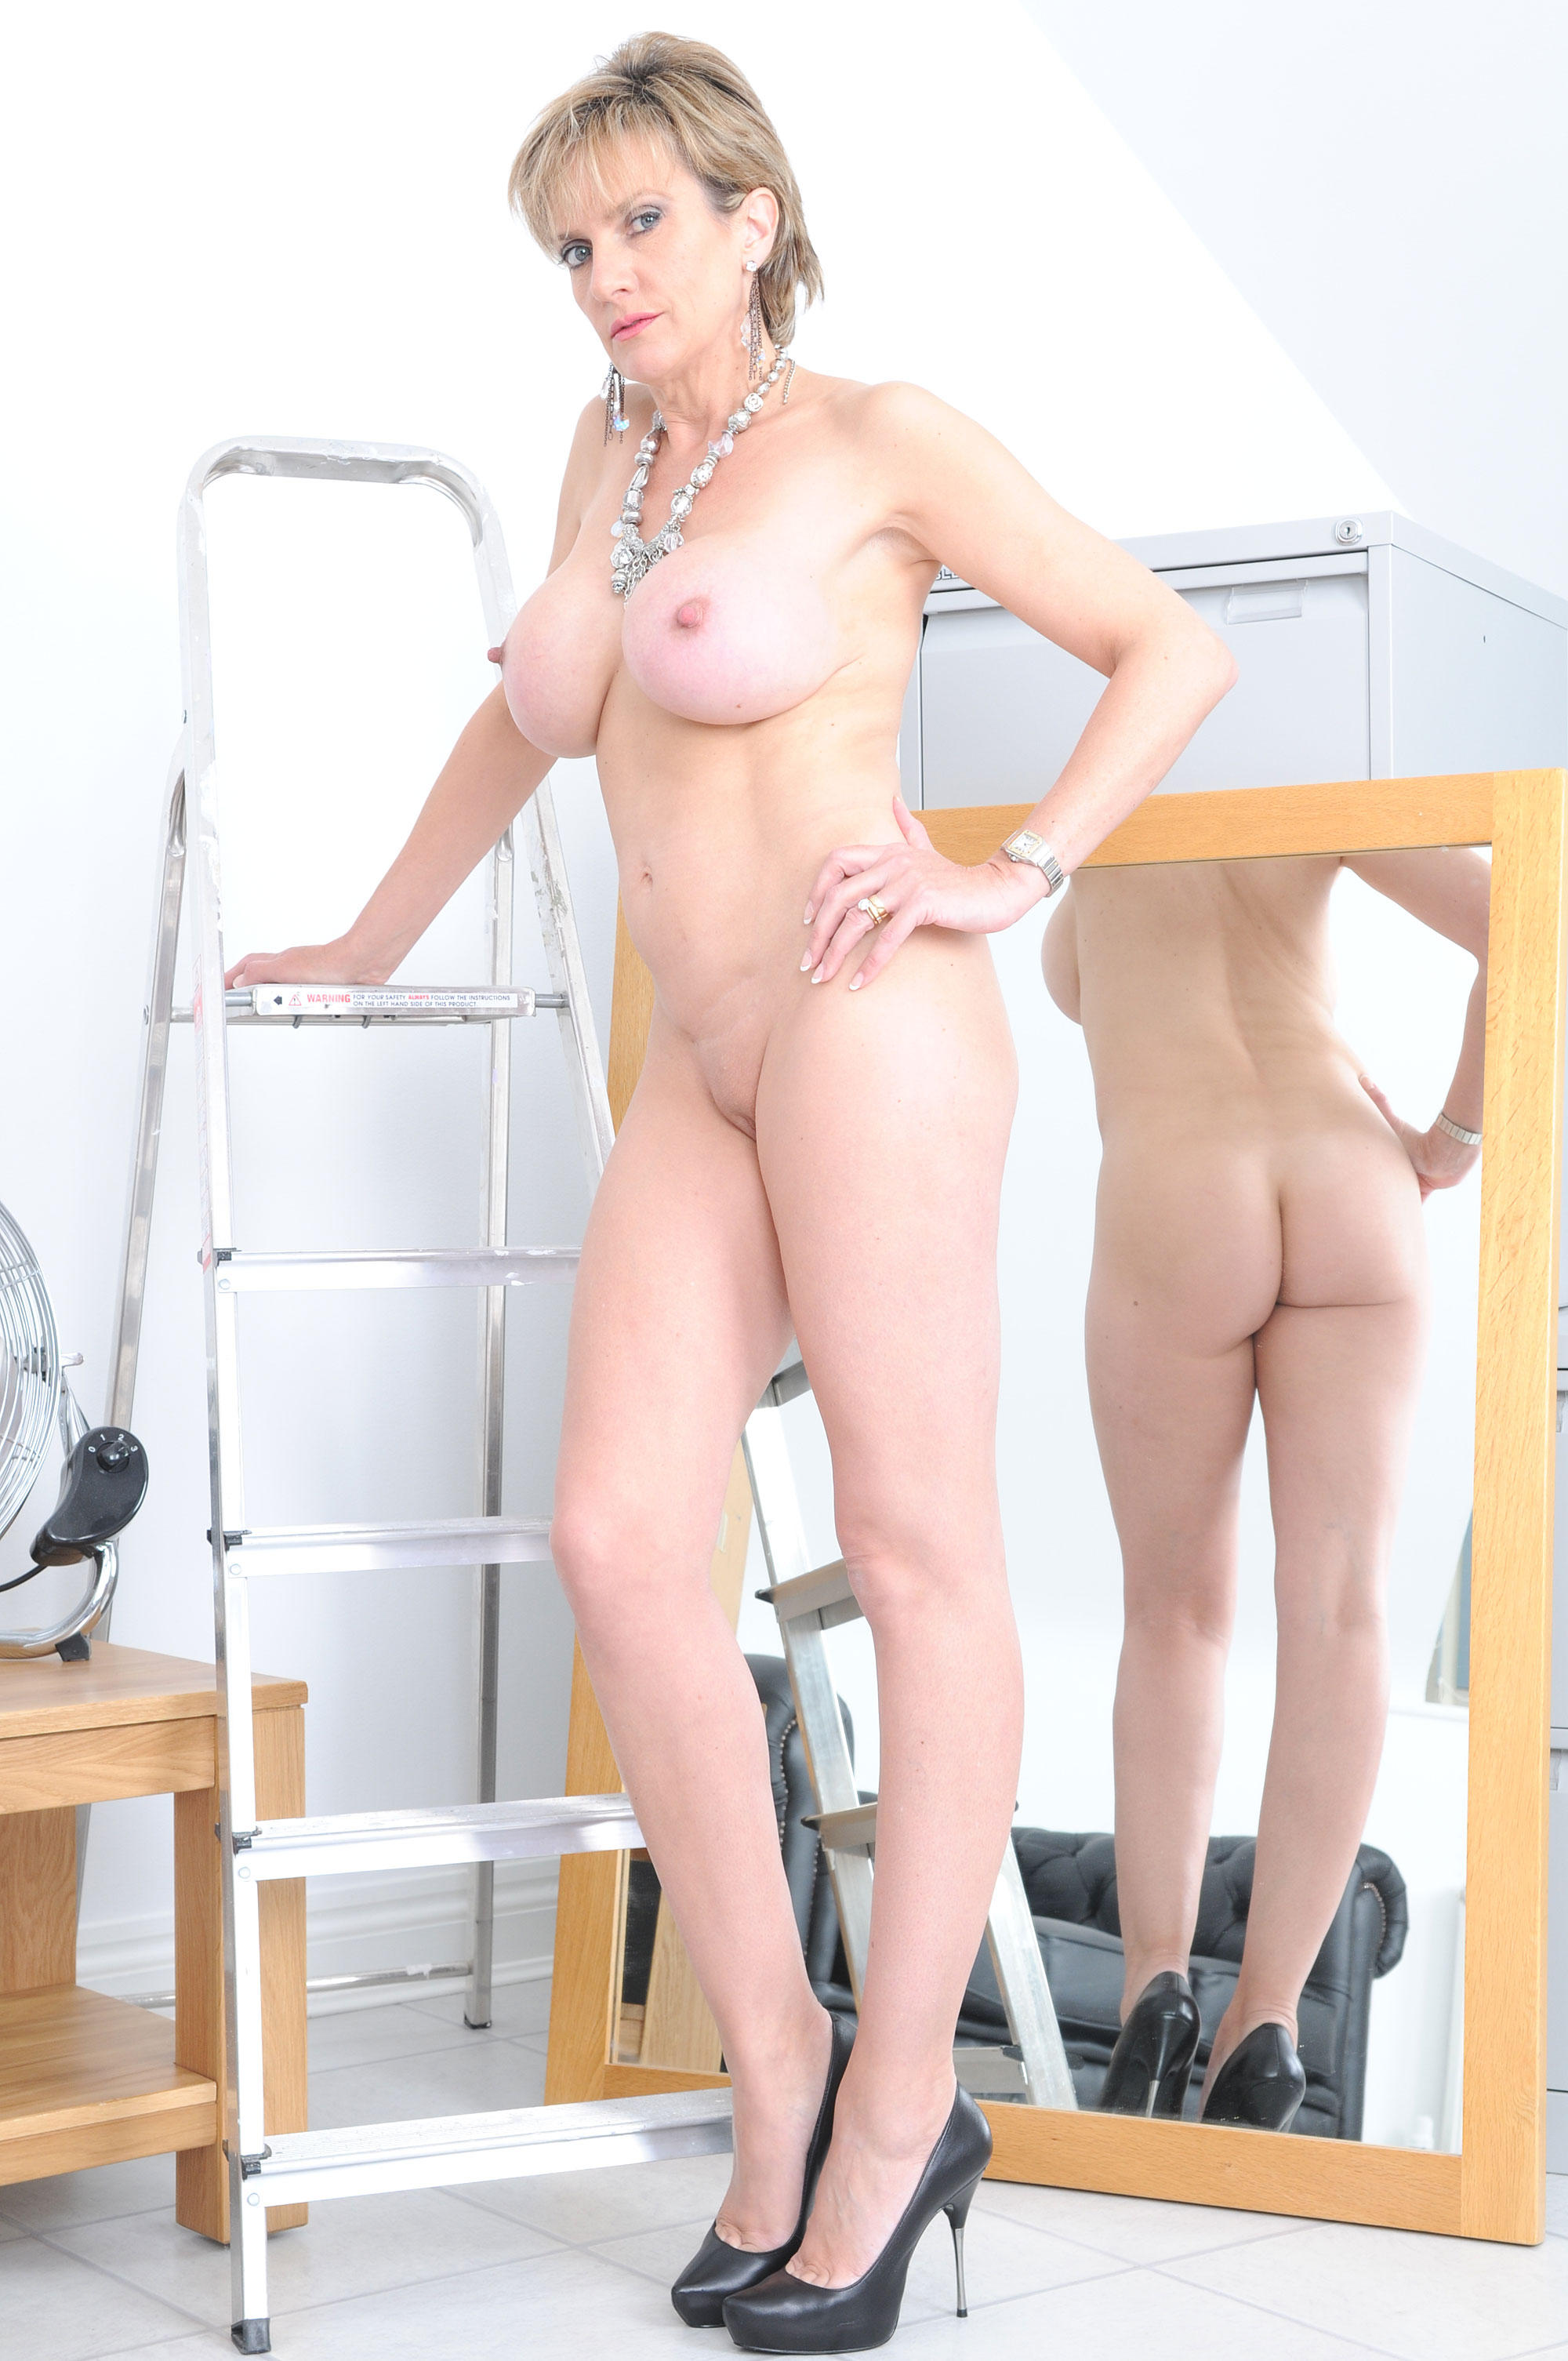 Candy may big cock in thight ass 6